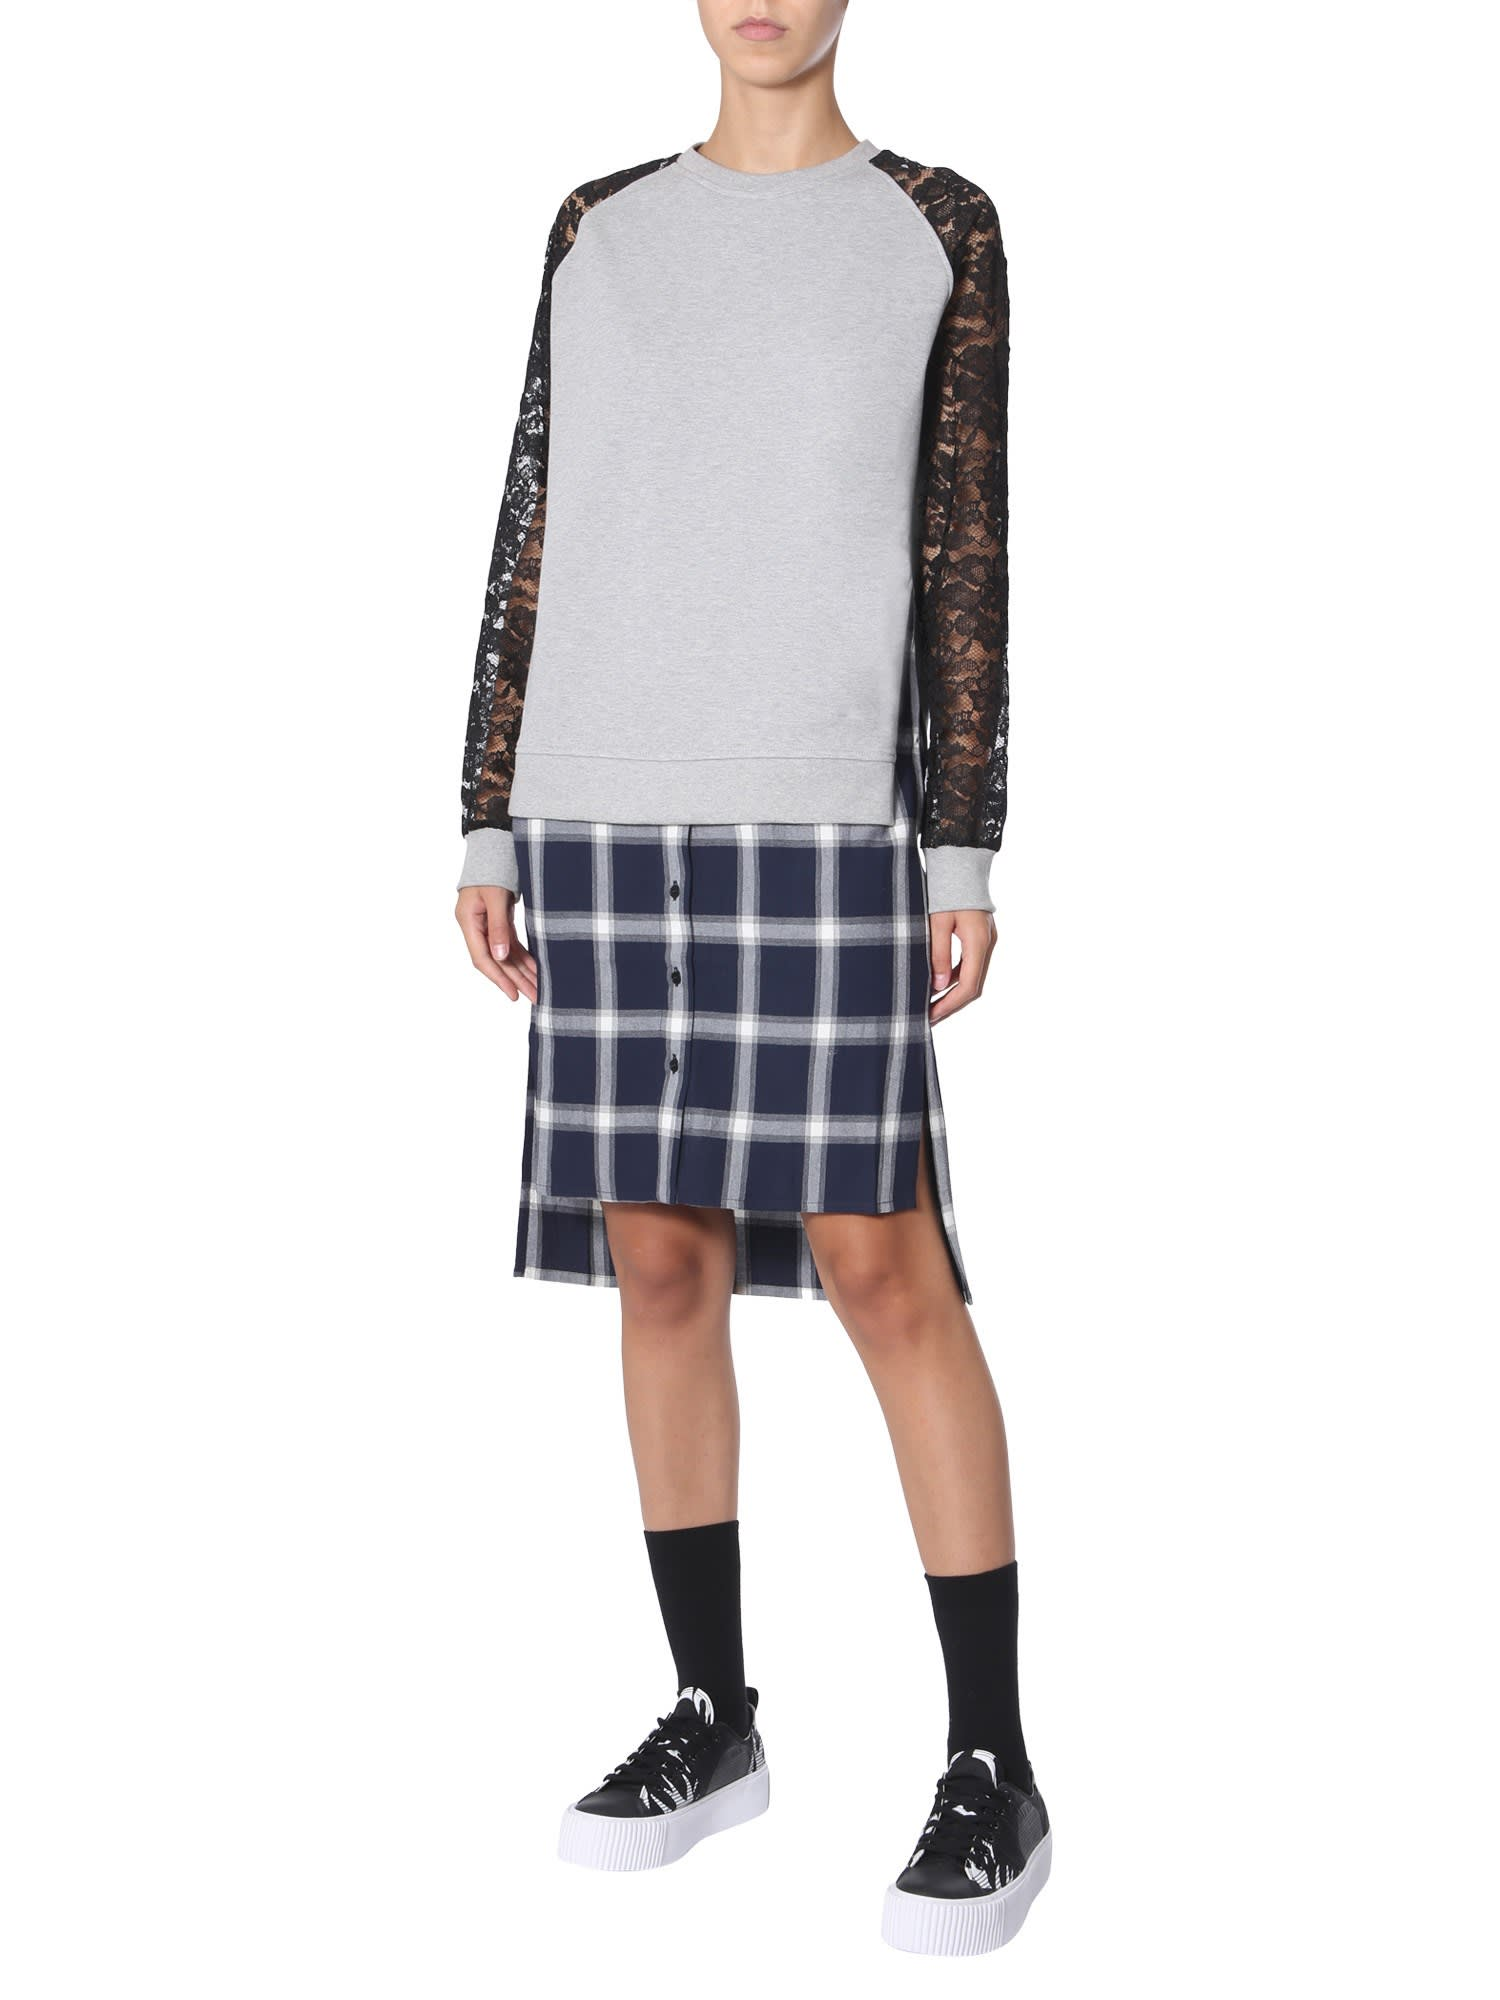 McQ Alexander McQueen Patchwork Dress